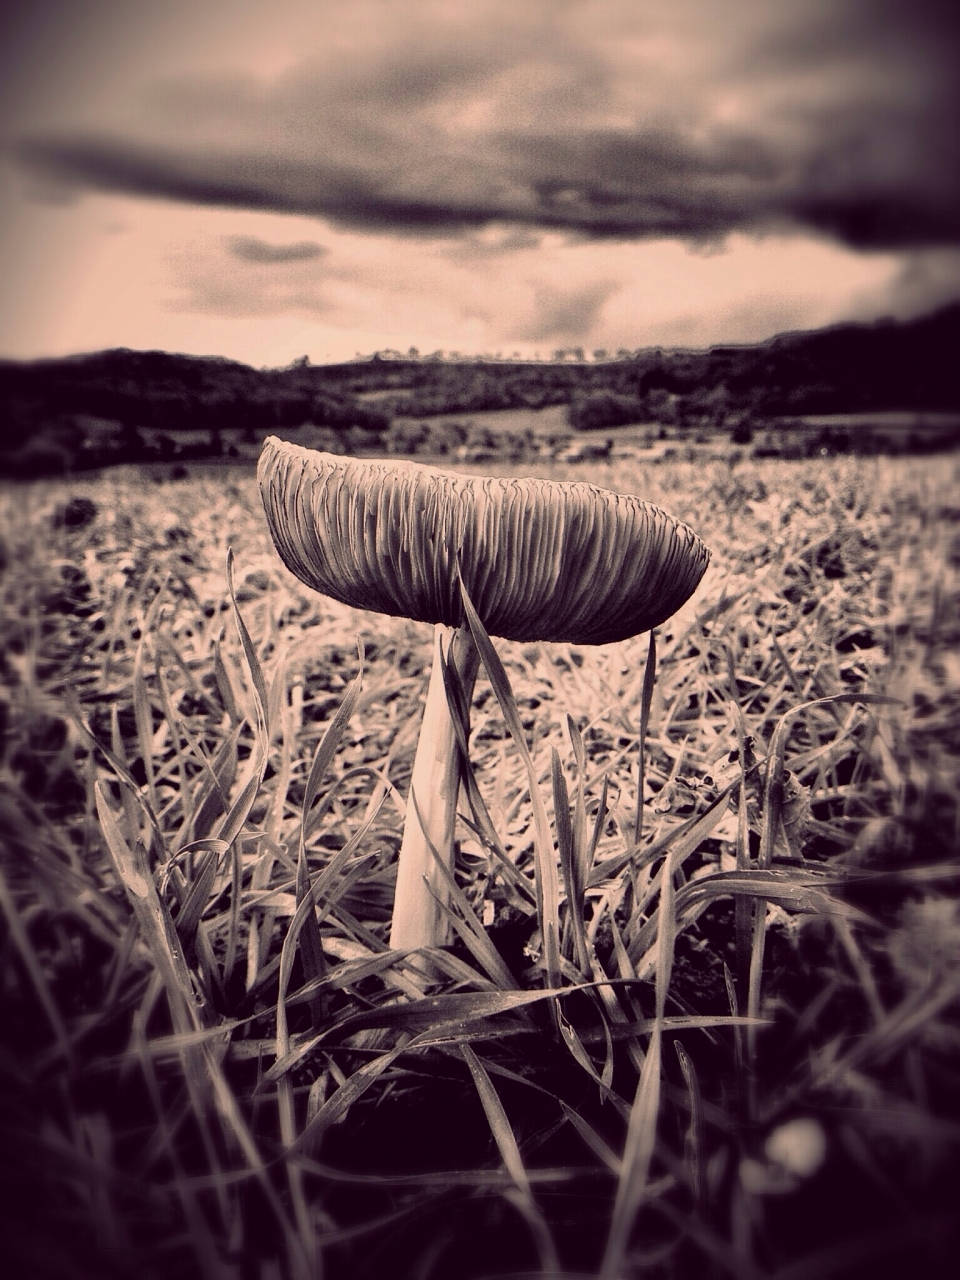 funghi , iPhone 4s , distressed fx , Pixlr , snapseed . Taken on a shropshire hillside .mobimono...